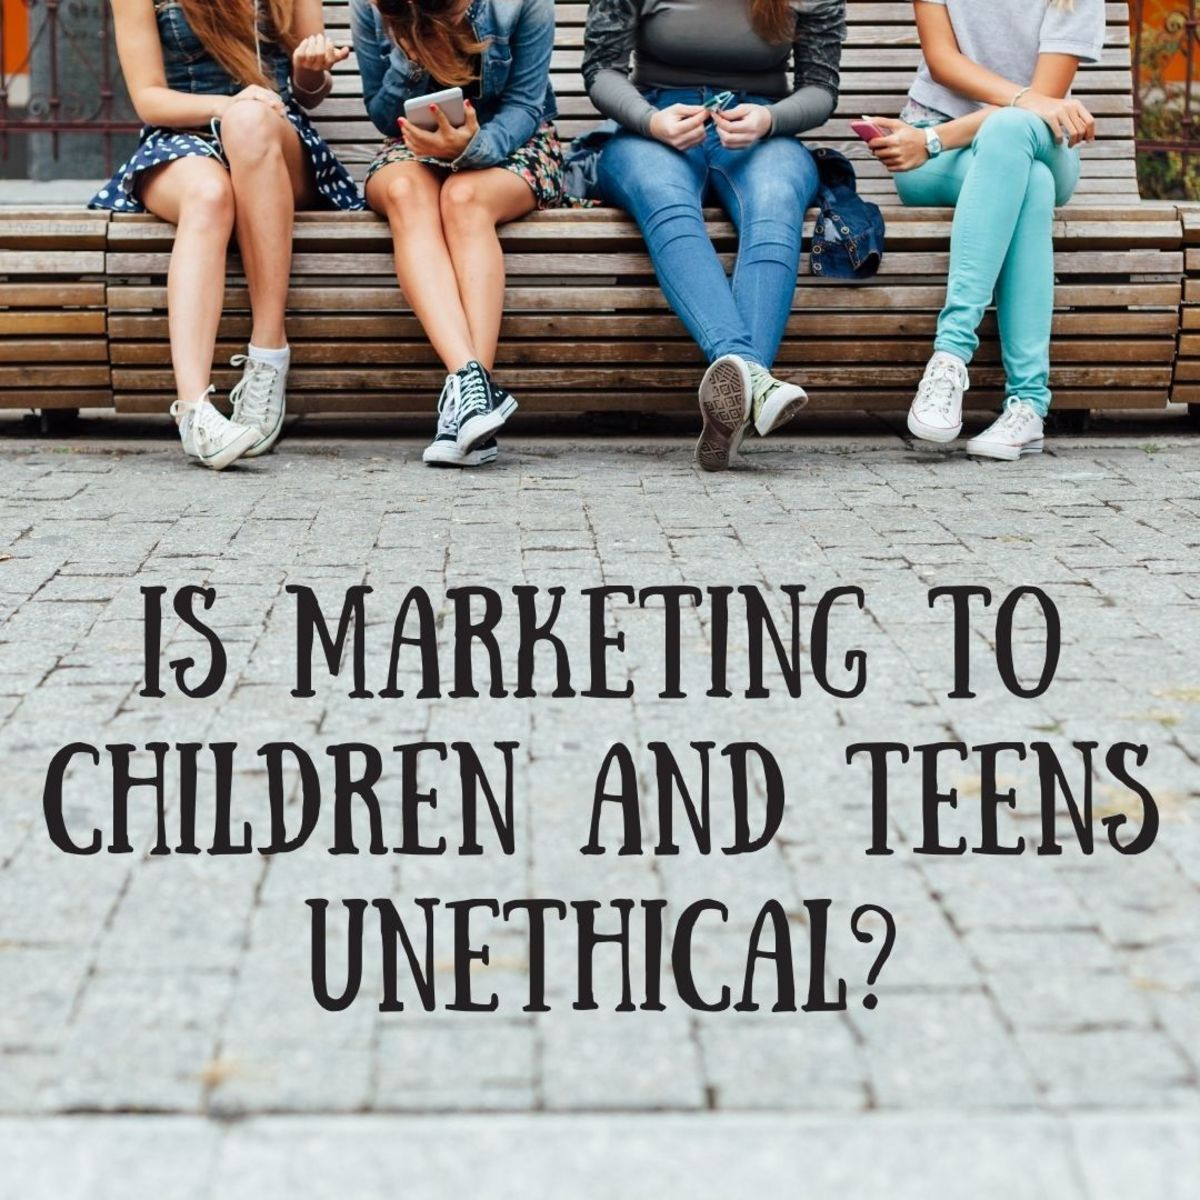 Is marketing to children, teens, and even babies unethical and problematic?